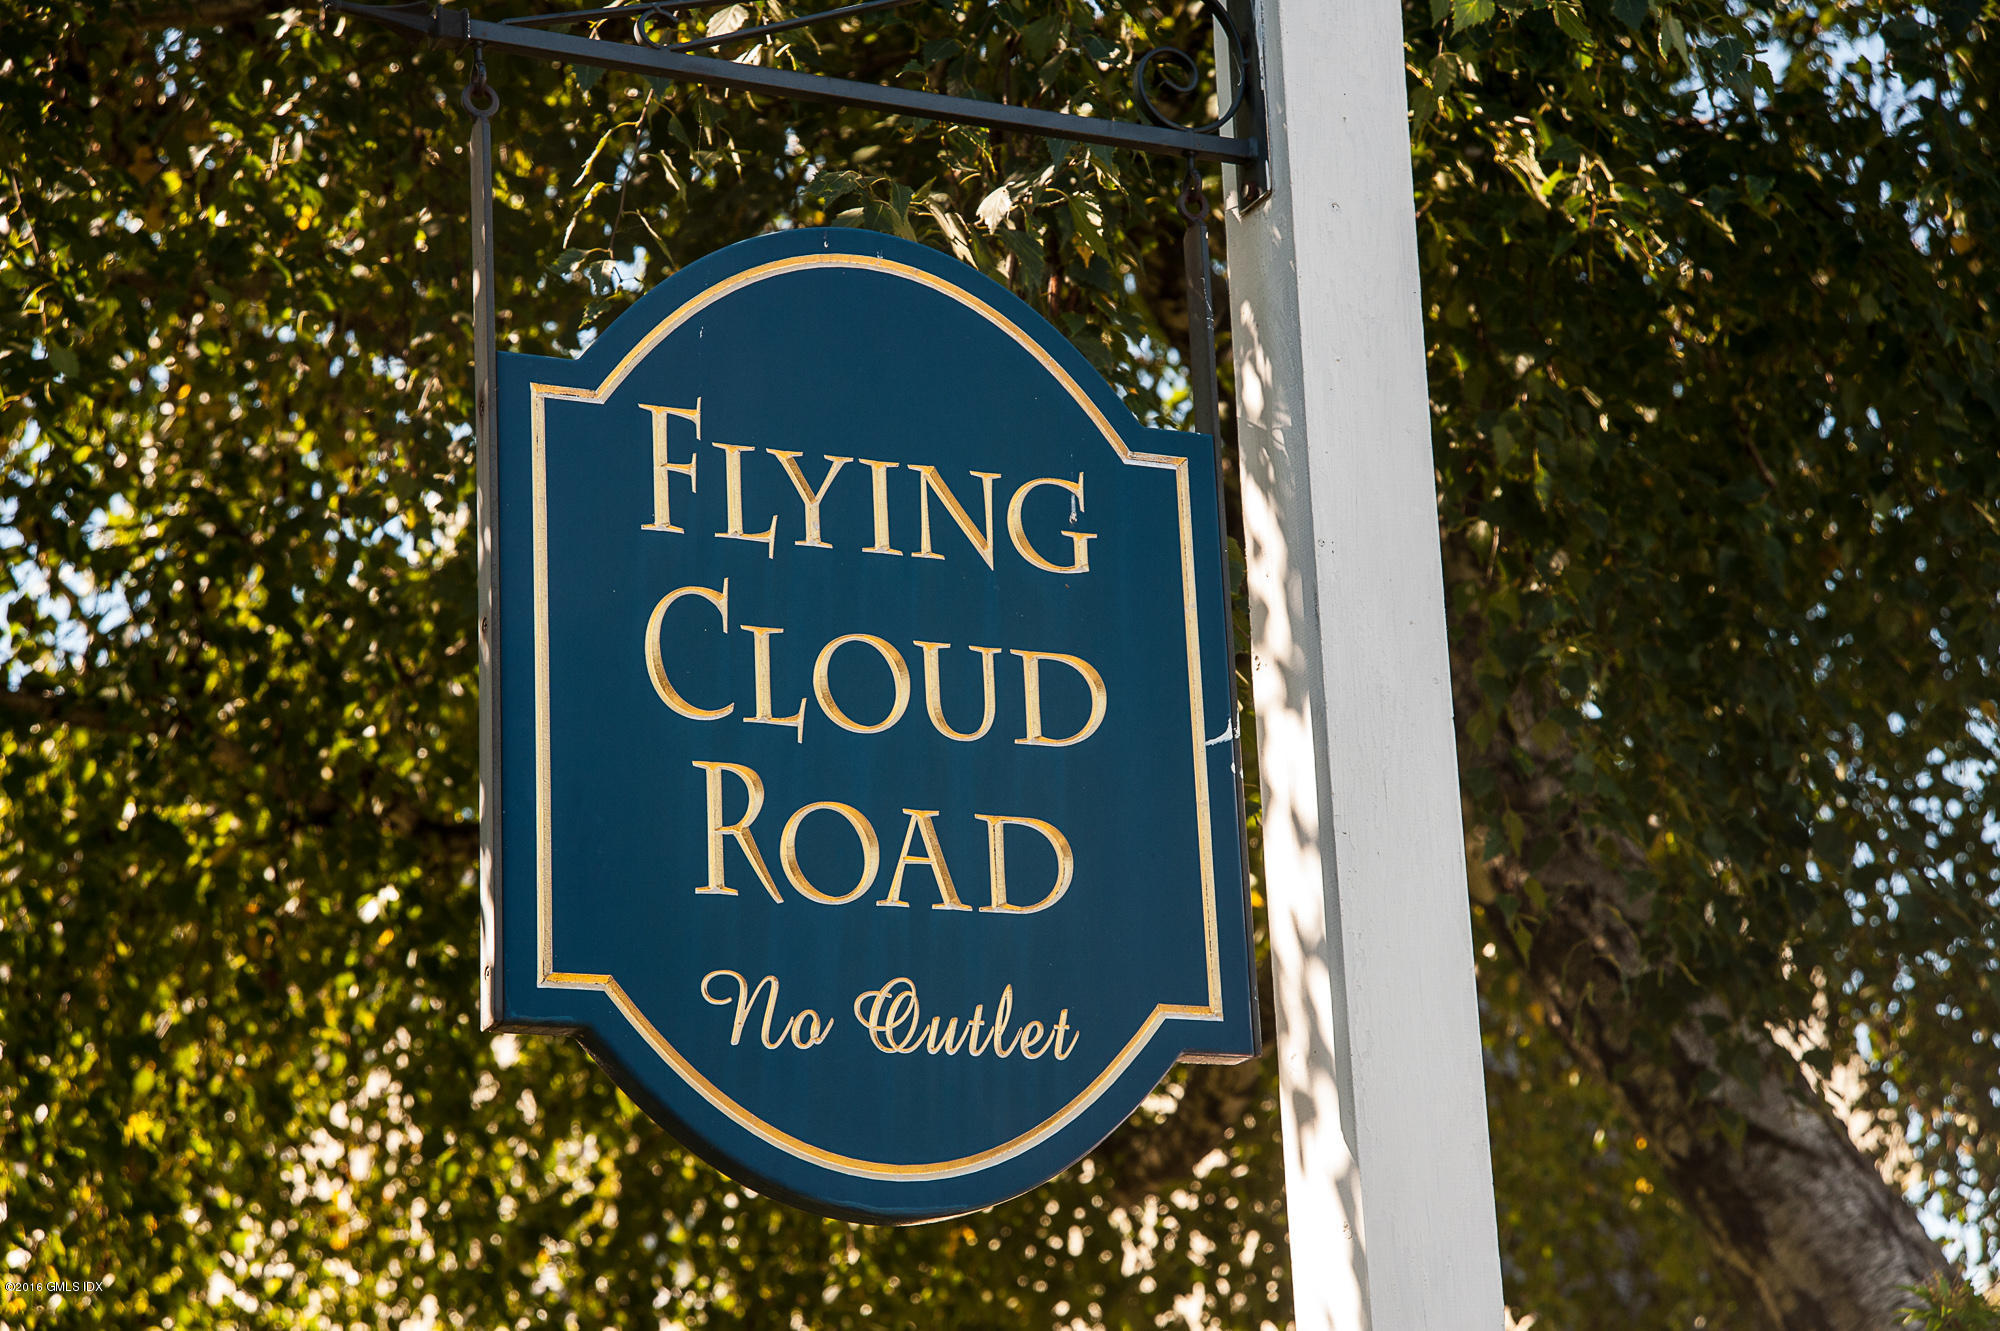 1 Flying Cloud Road Stamford, CT 06902